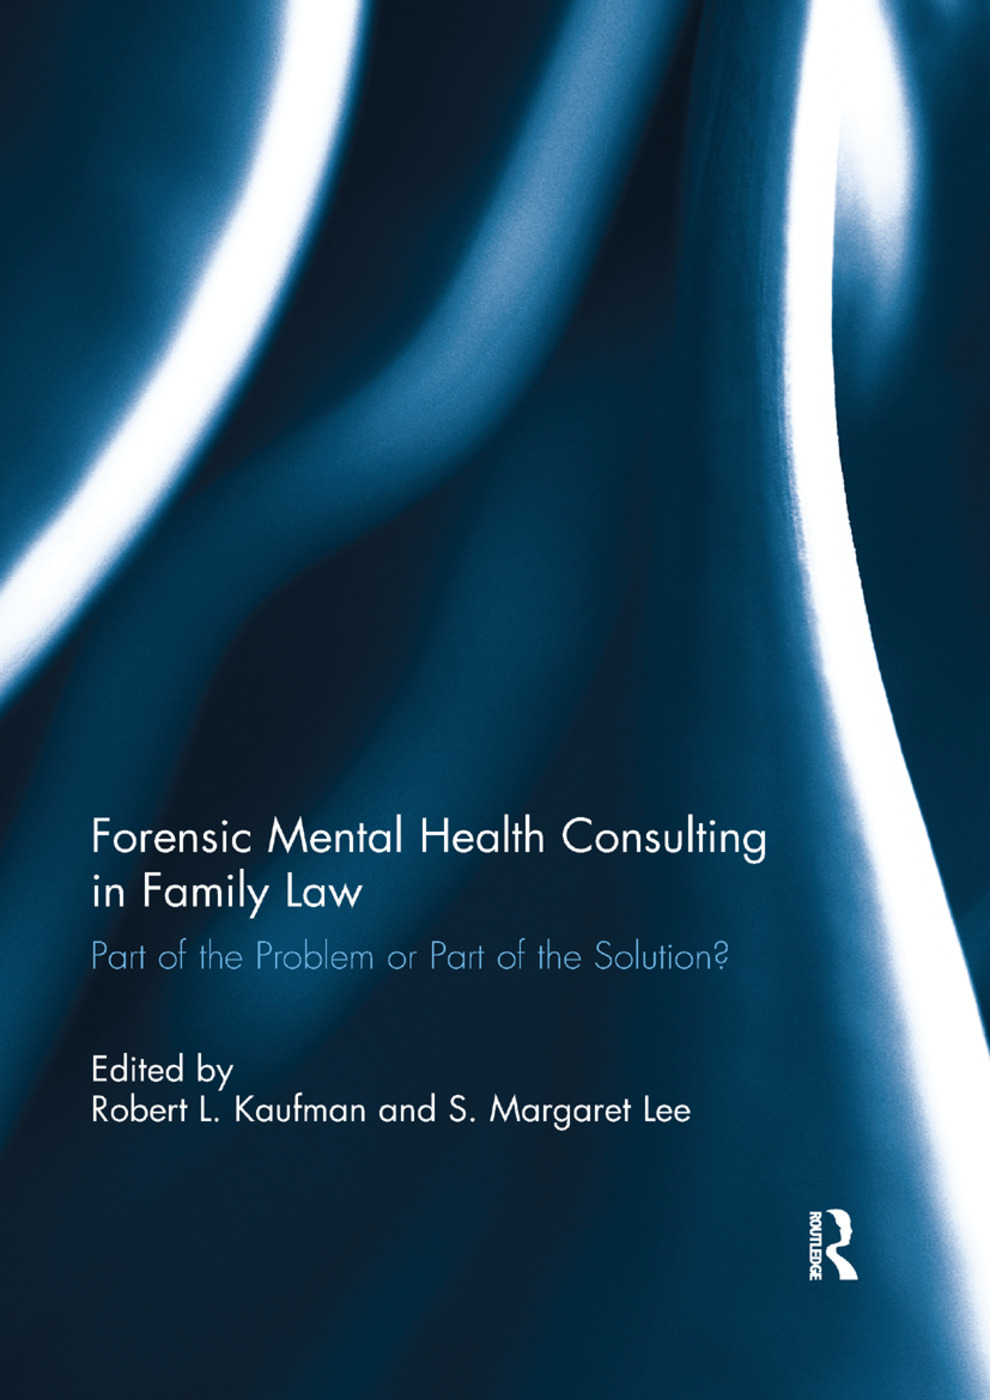 Forensic Mental Health Consulting in Family Law: Part of the Problem or Part of the Solution? book cover